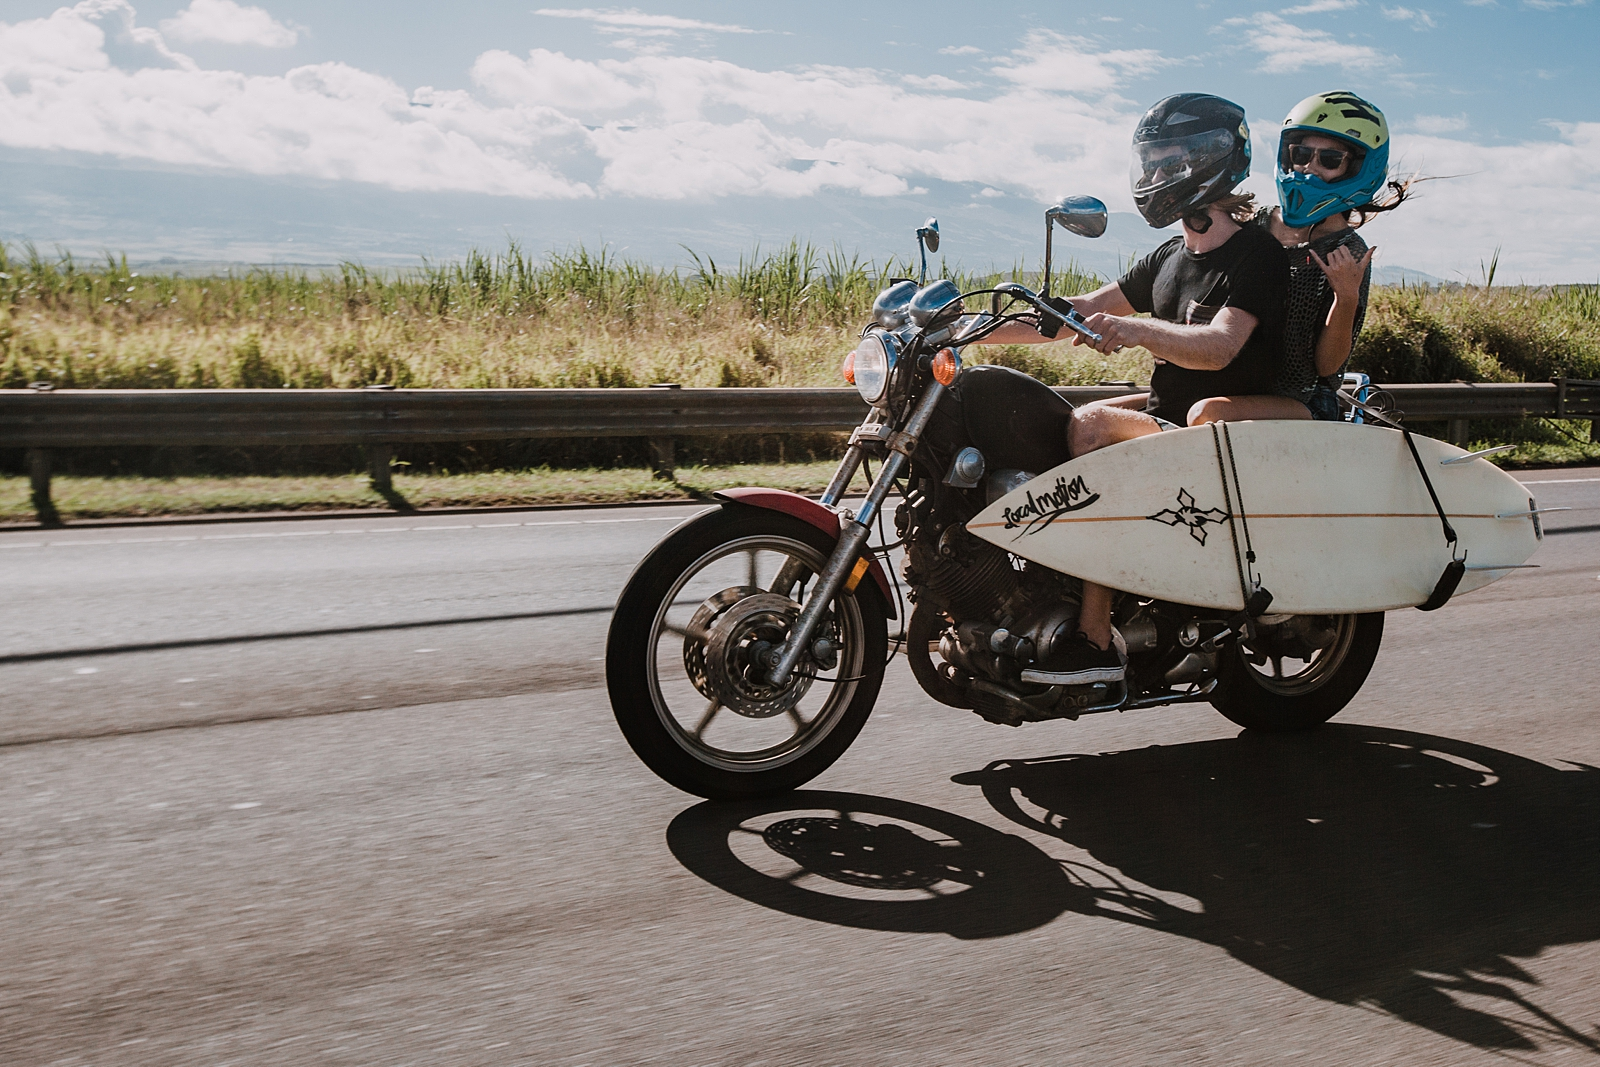 couple riding motorcycle with surfboard in maui hawaii, surfboard on a motorcyle, maui hawaii engagements, maui hawaii elopement, paia surfing, motorcycle engagements